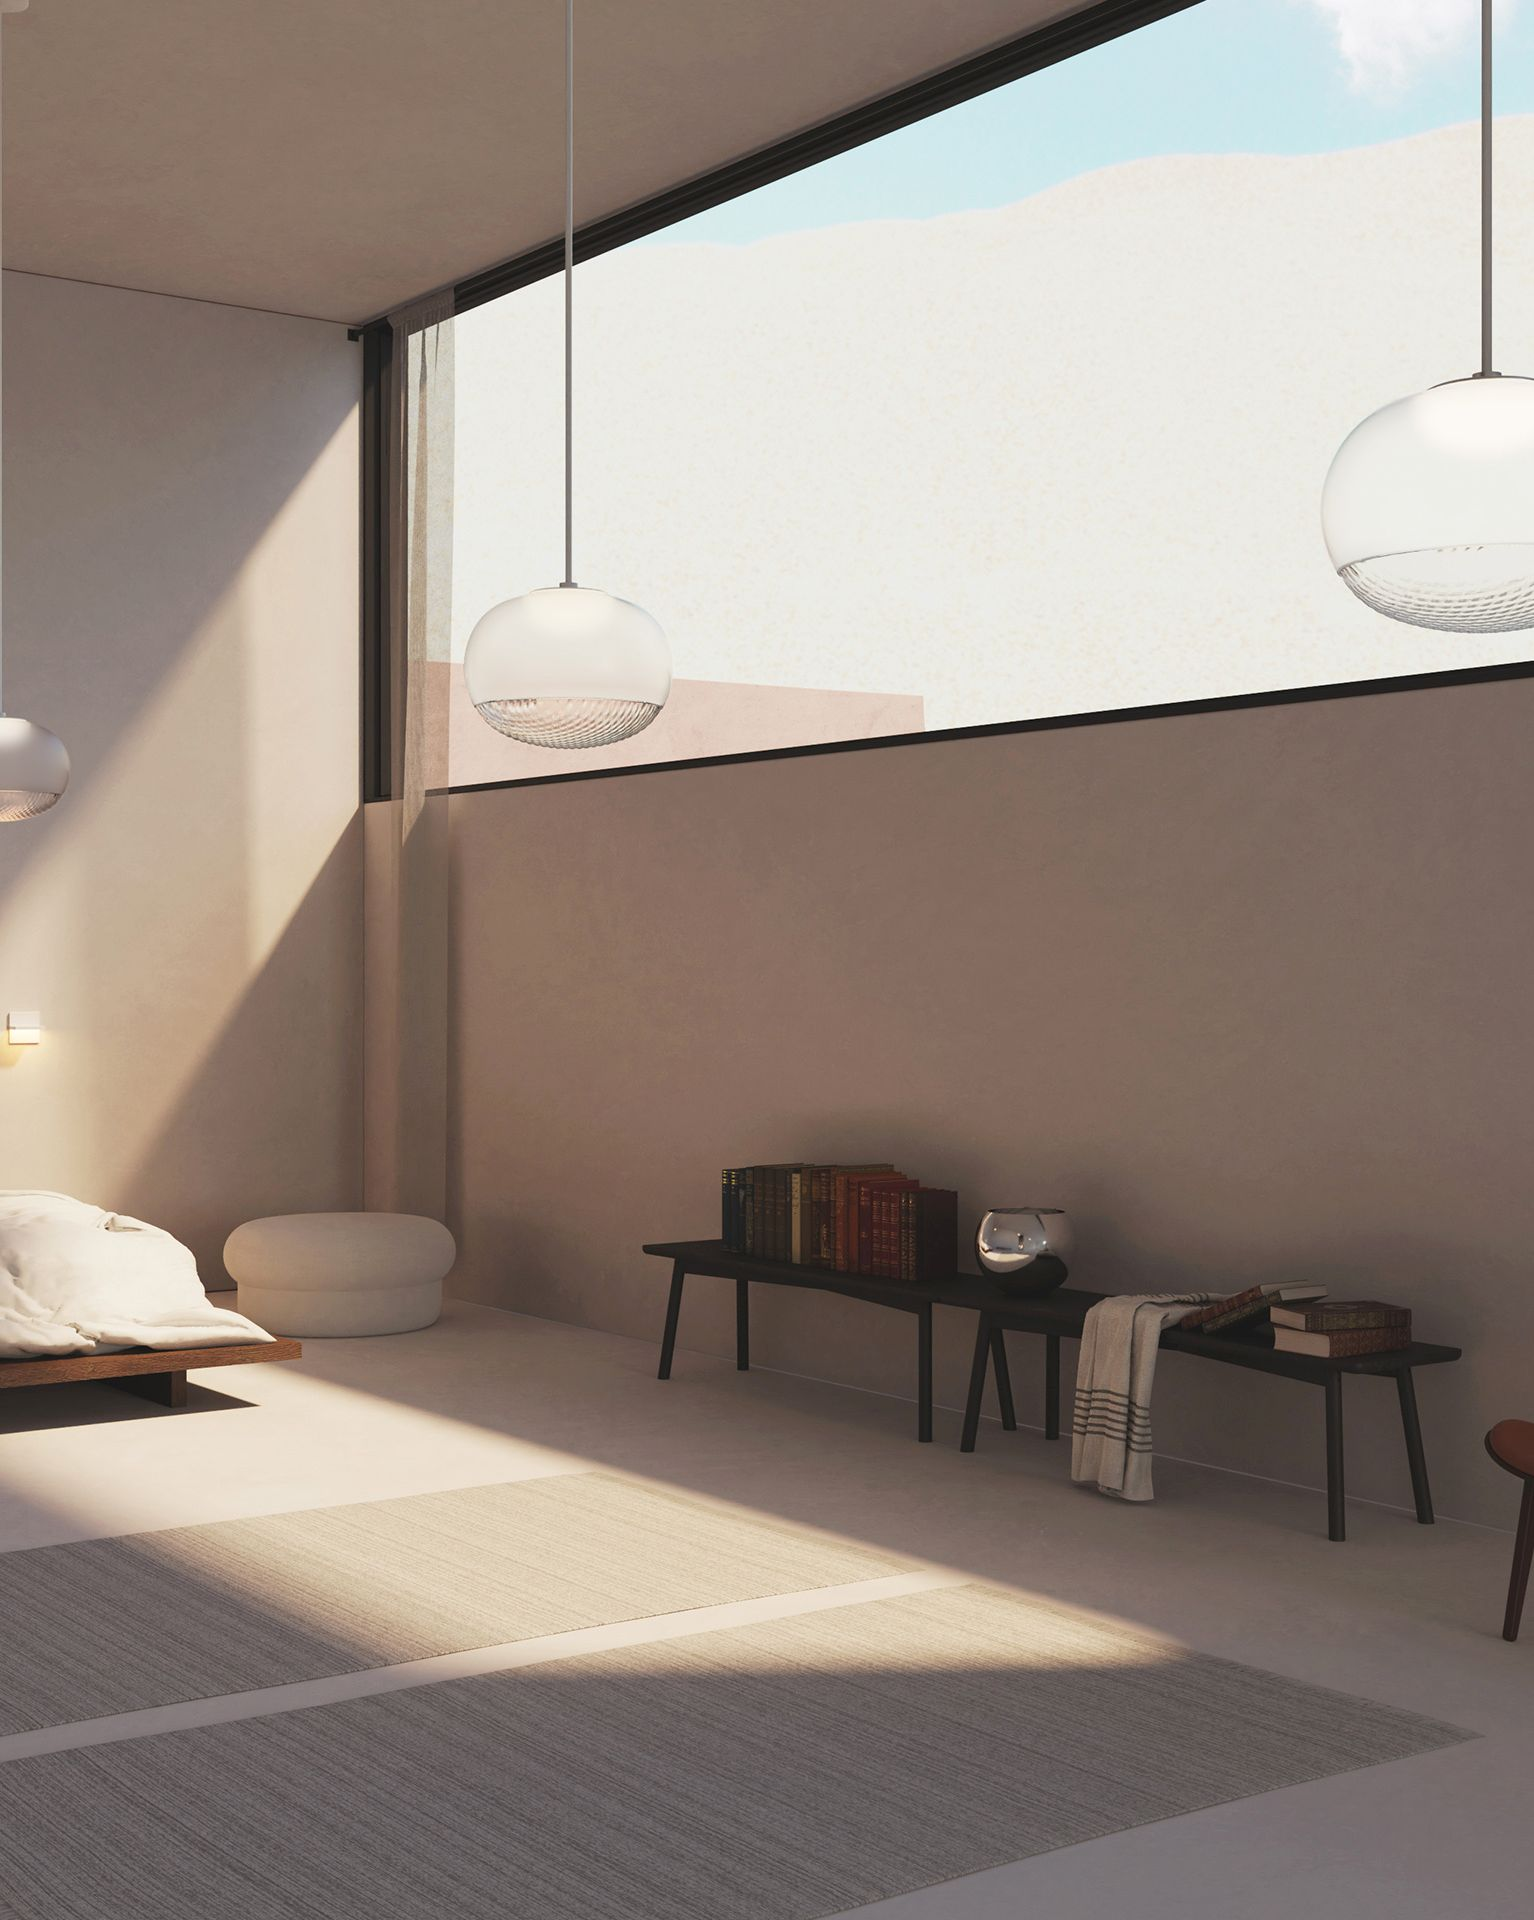 Print pendants clear/frosted glass globe in a bedroom